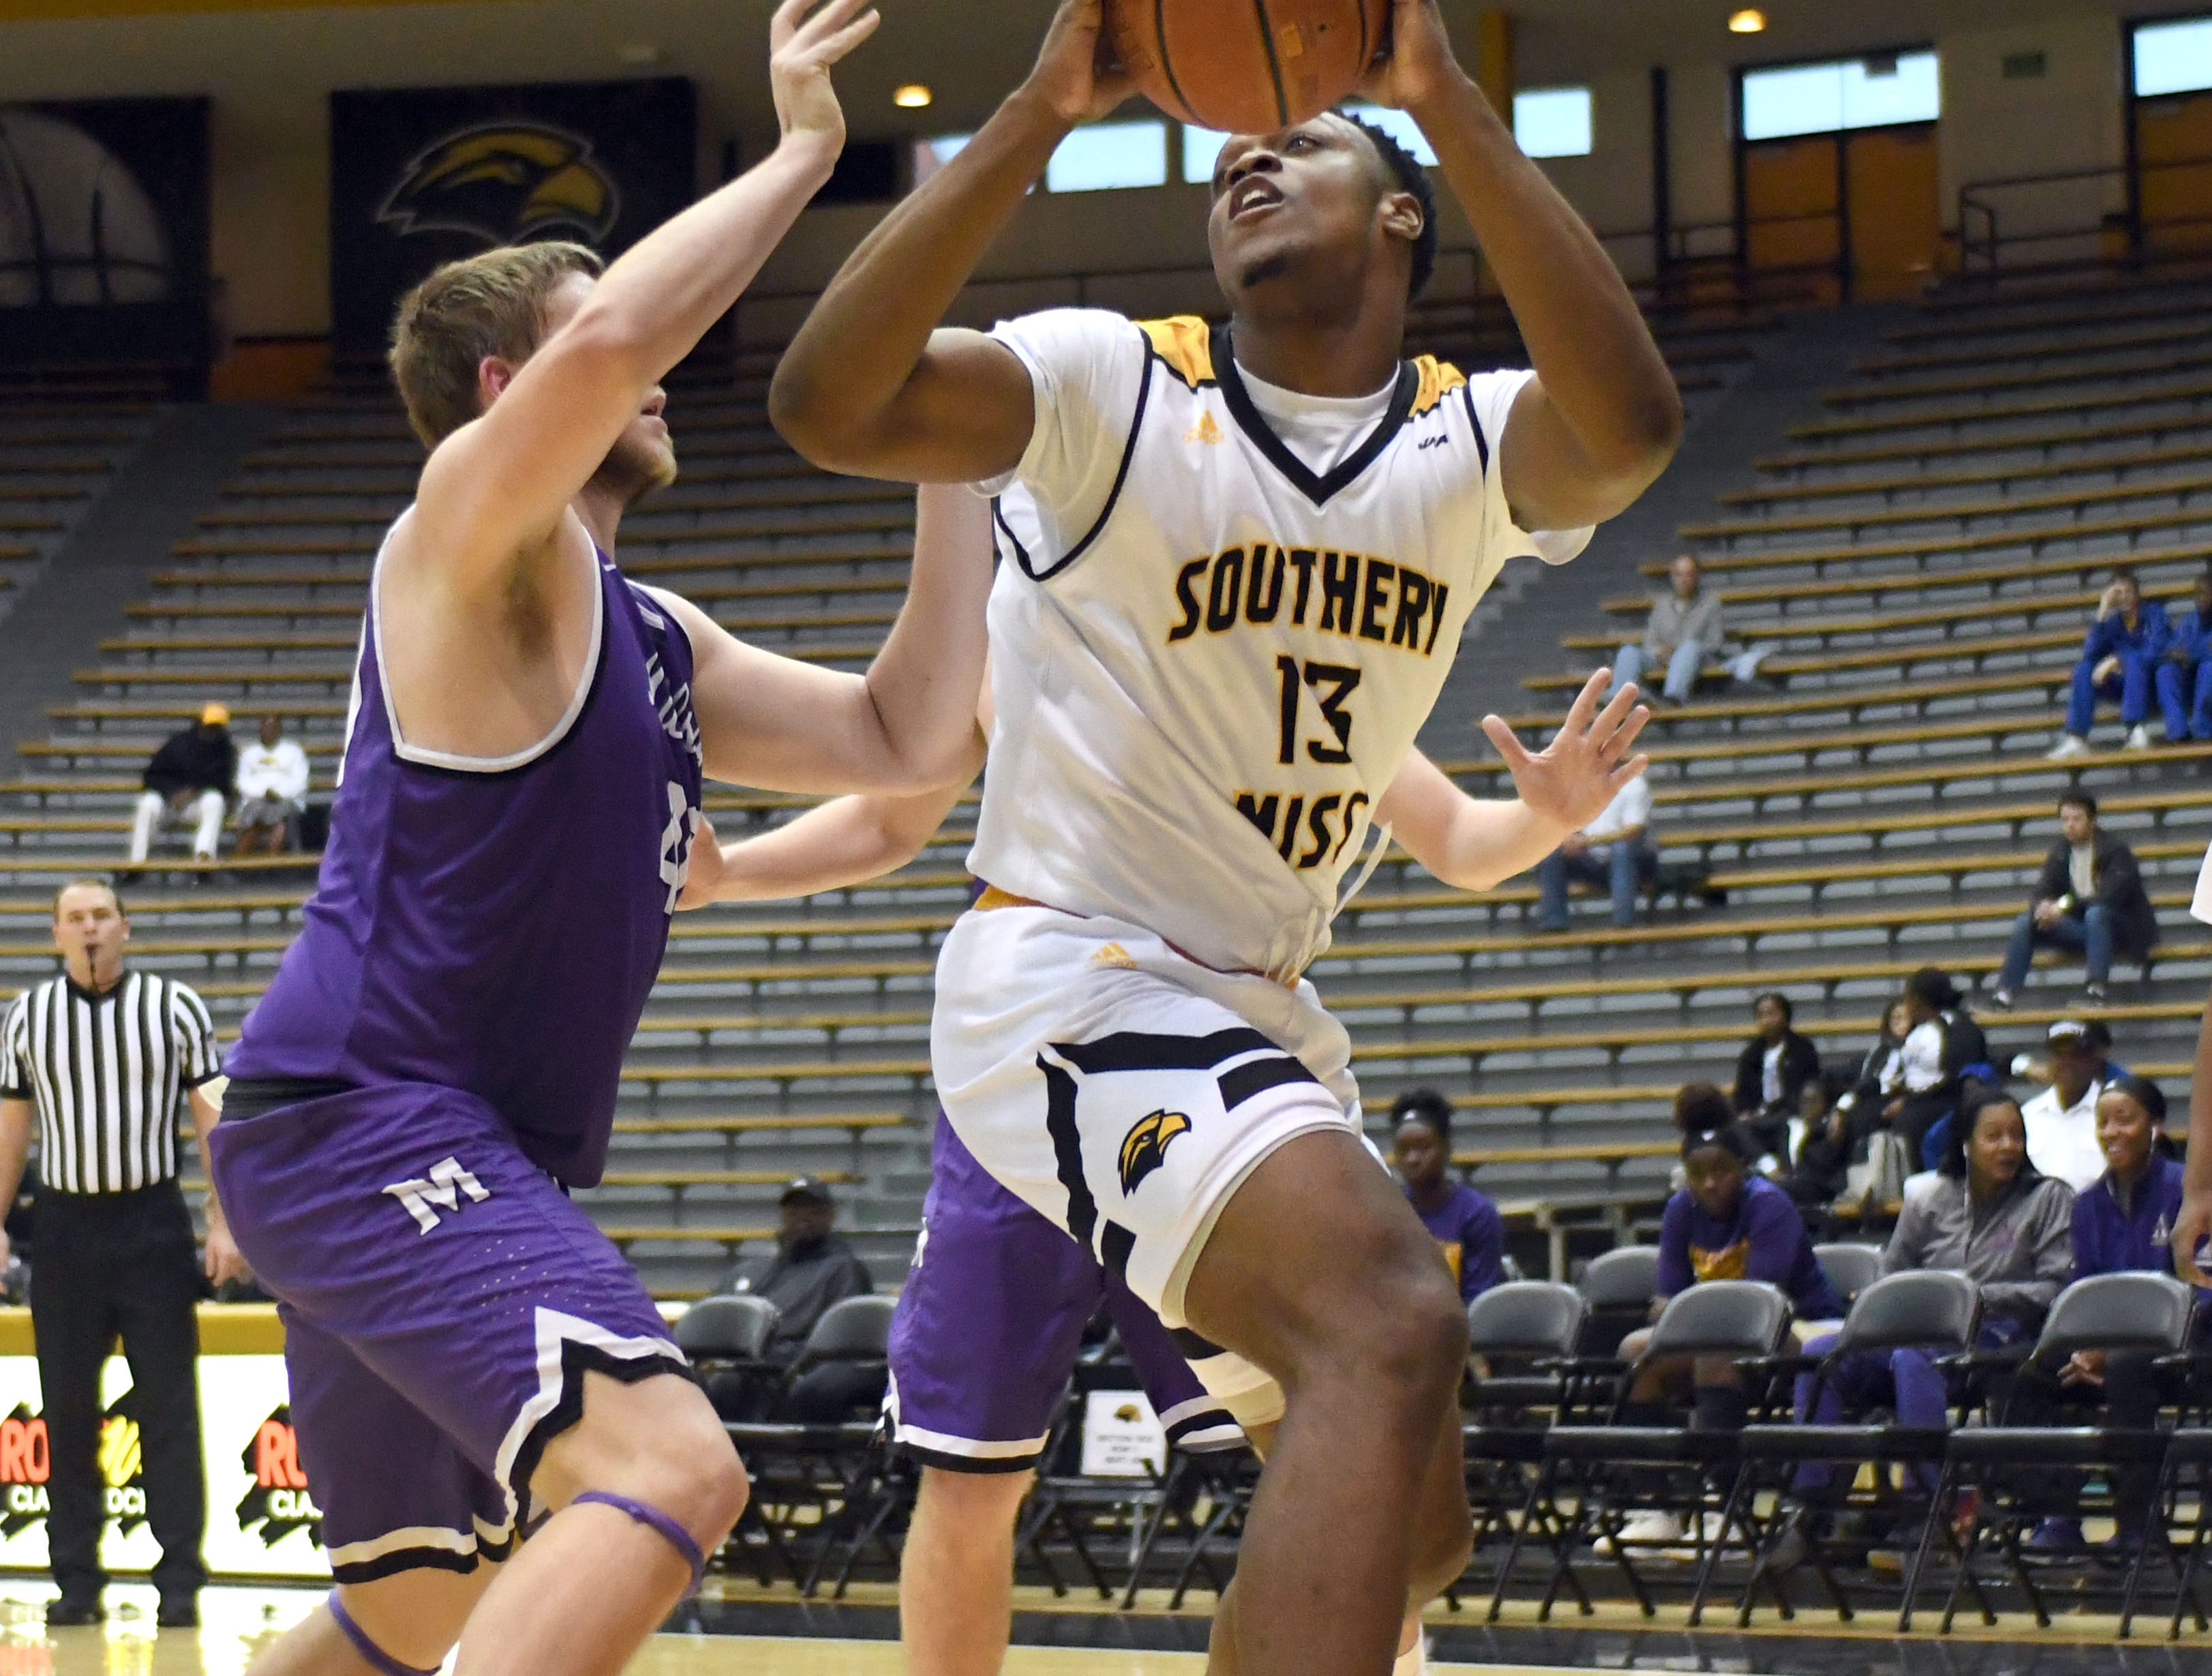 Southern Miss forward Boban Jacdonmi shoots for the basket in a game against Millsaps in Reed Green Coliseum on Tuesday, December 11, 2018.